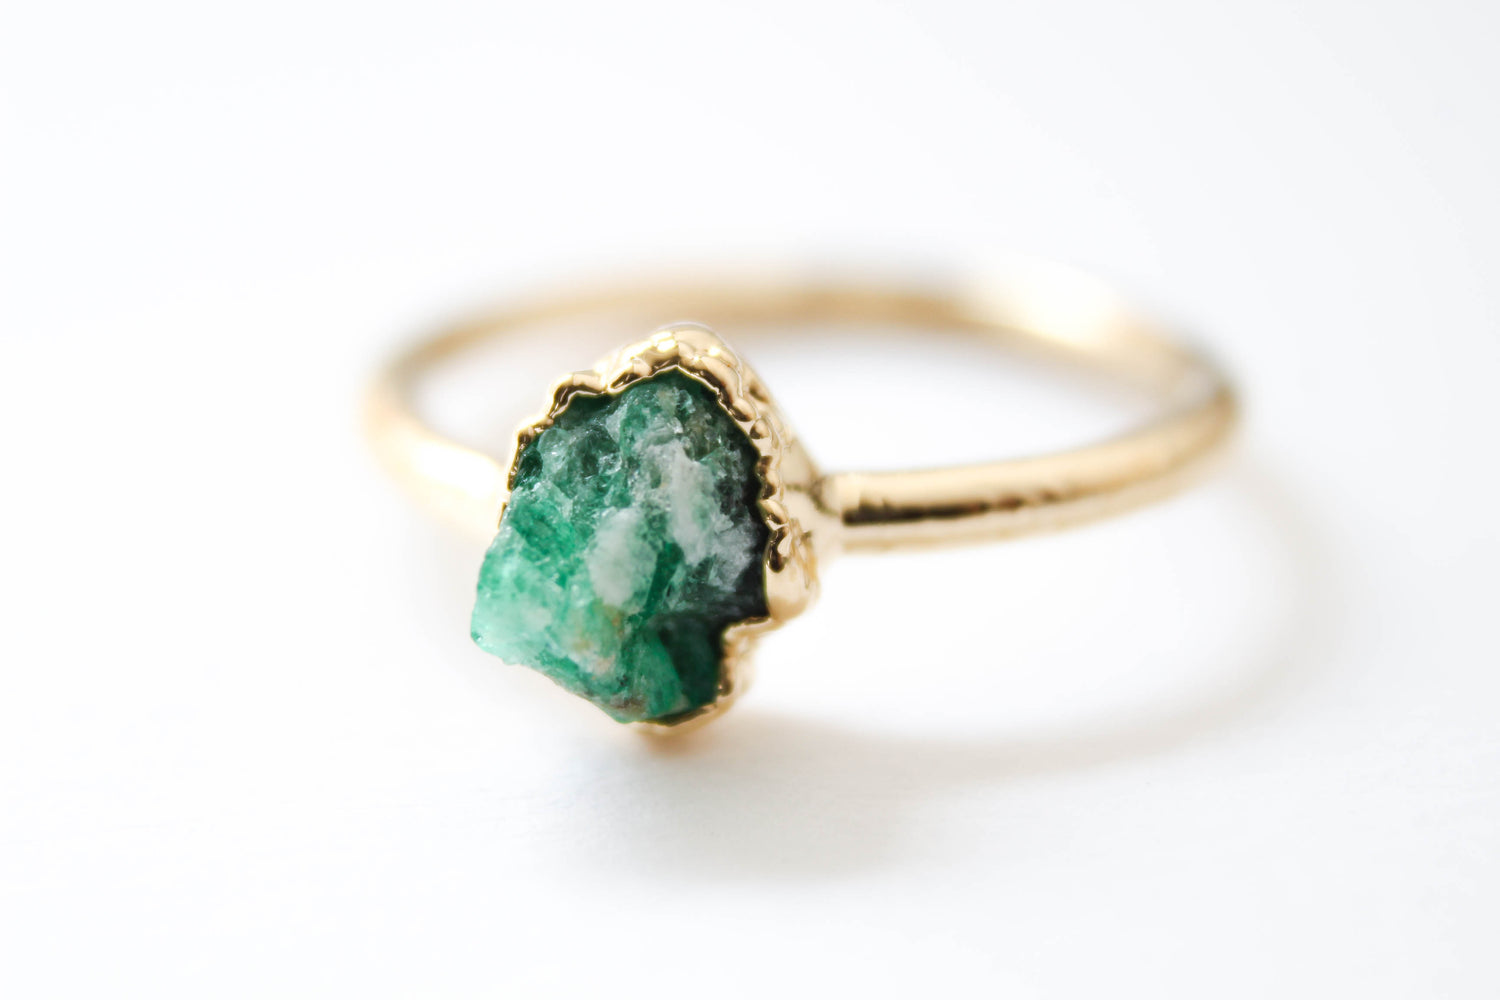 The Jewel of Kings Ring - The Fox And Stone Bohemian Jewelry Alternative Engagement Ring